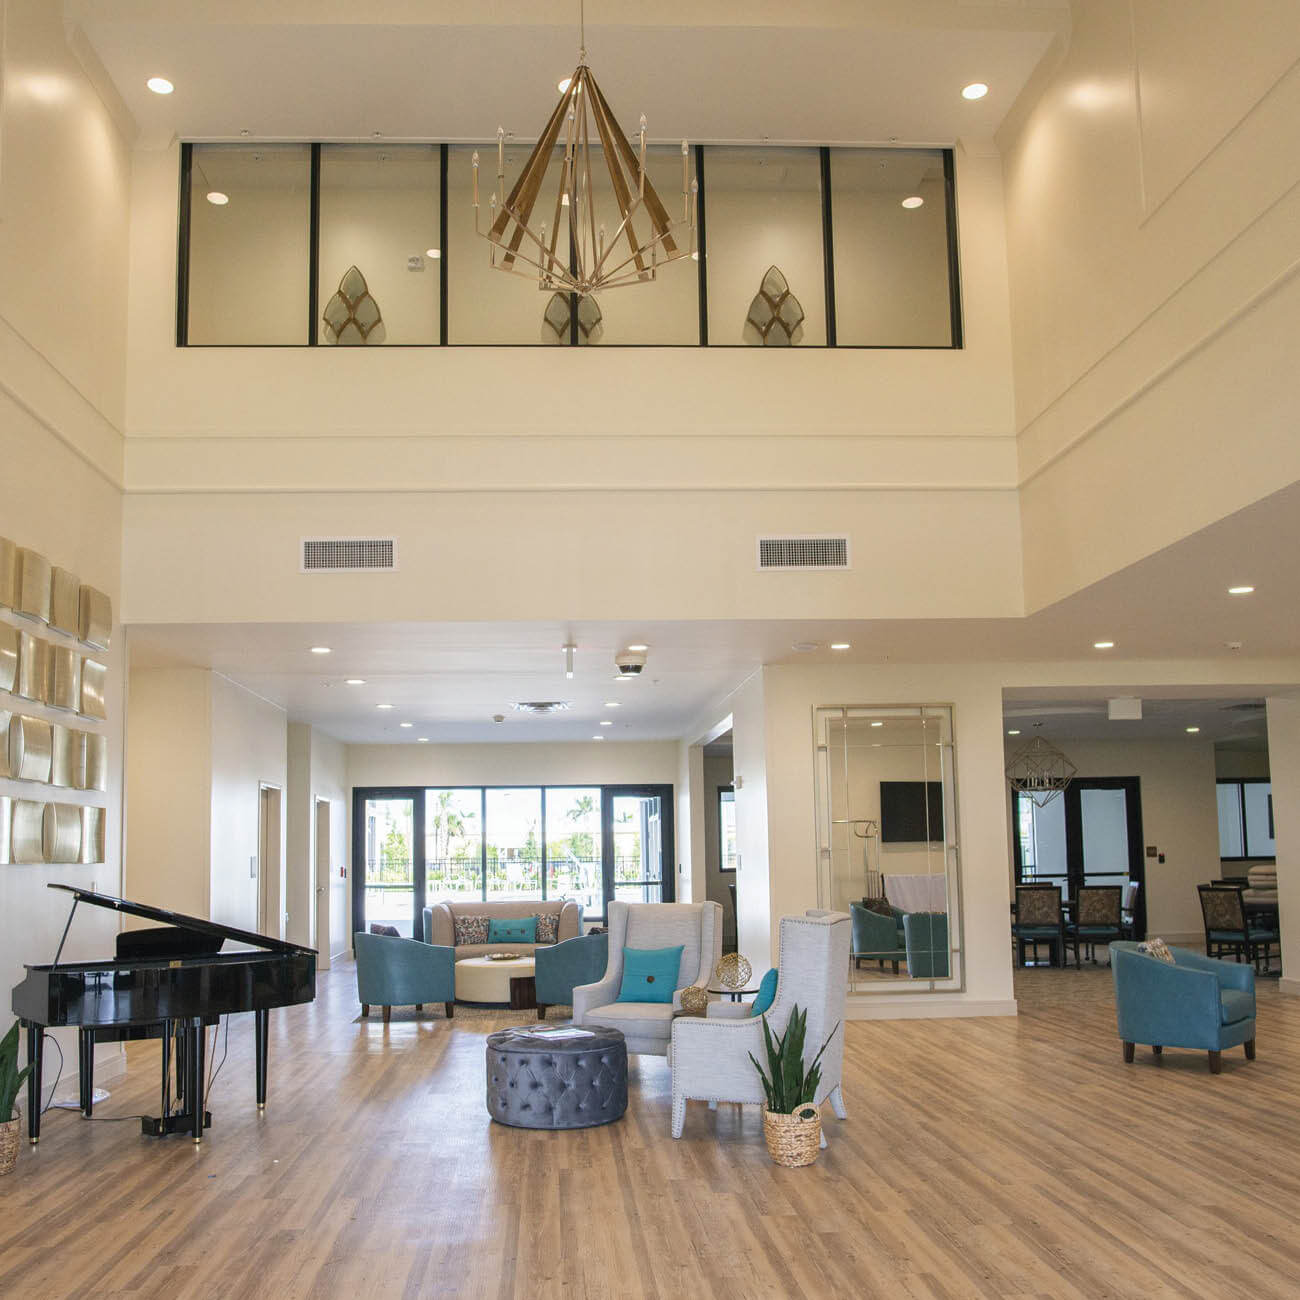 Lobby at Highpoint at Cape Coral includes piano, multiple seating areas and large windows.